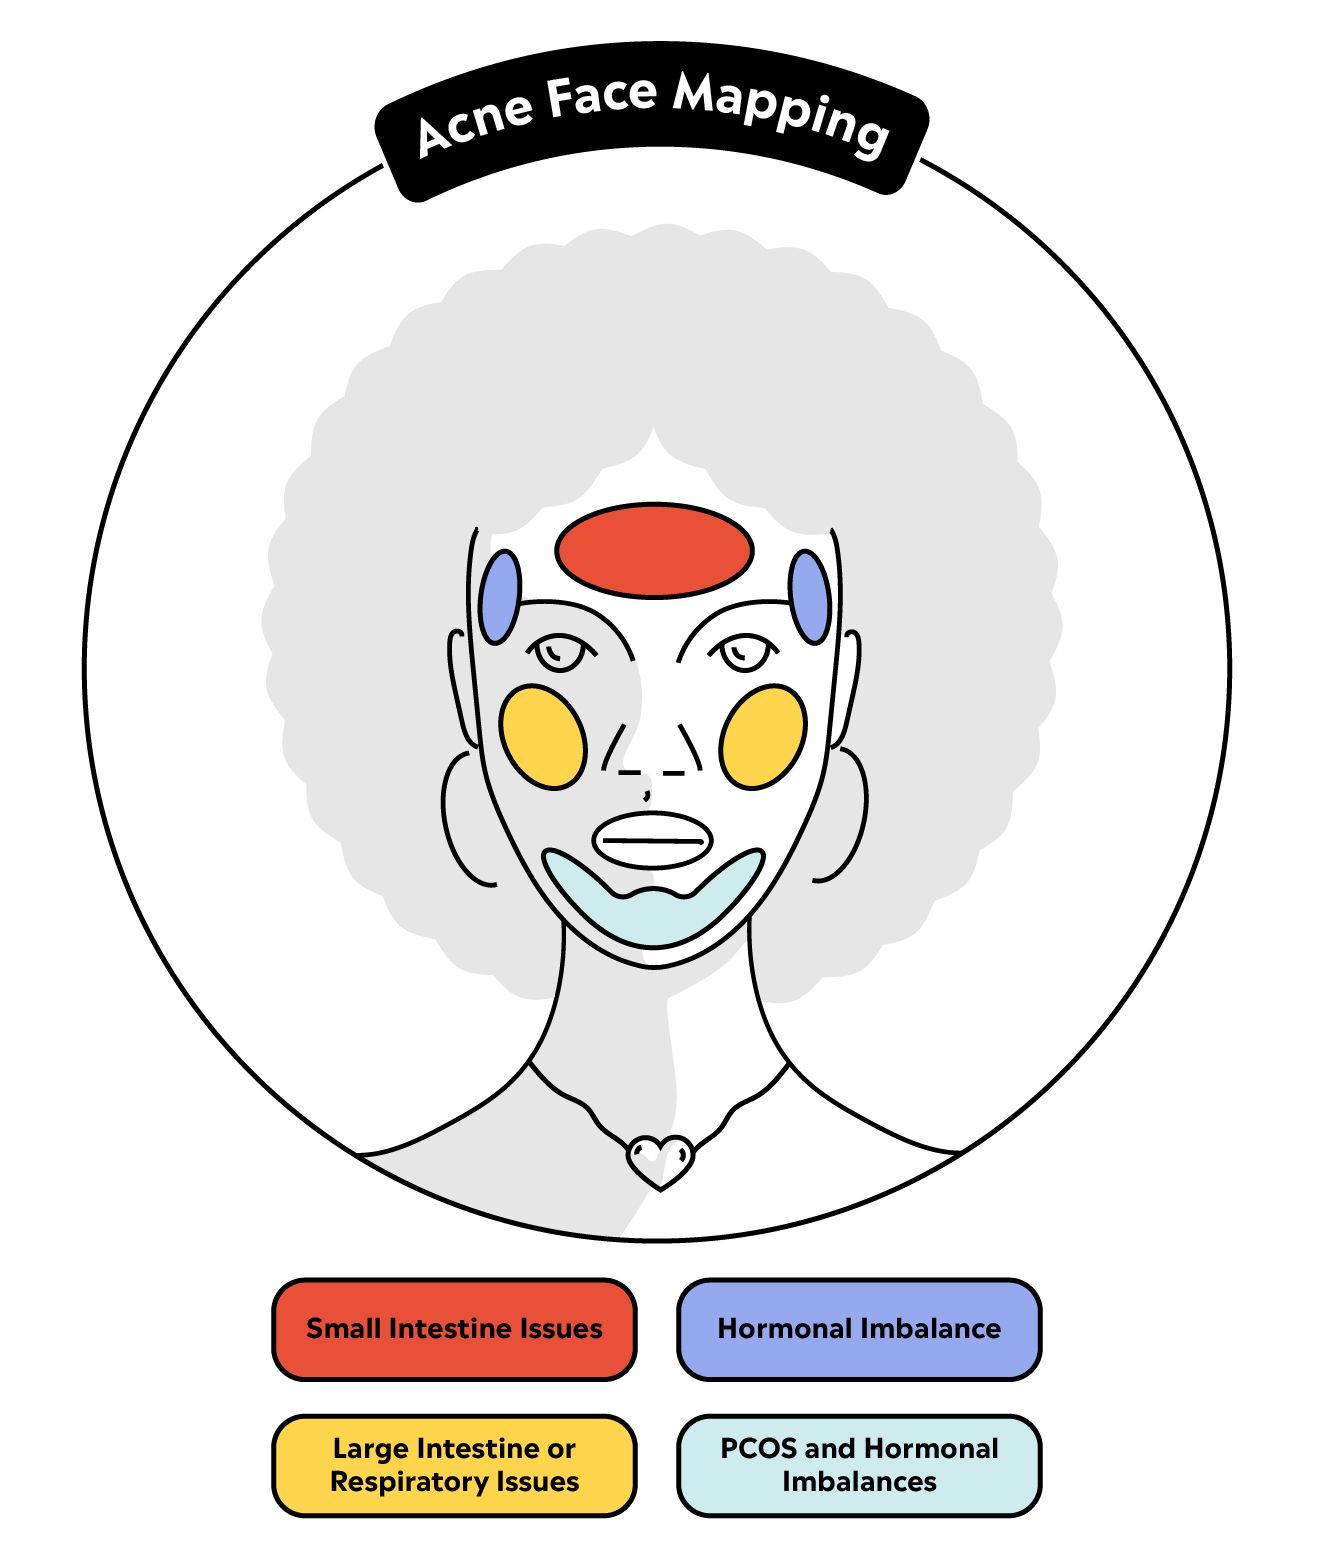 Can Face Mapping Help You Treat Your Breakouts?